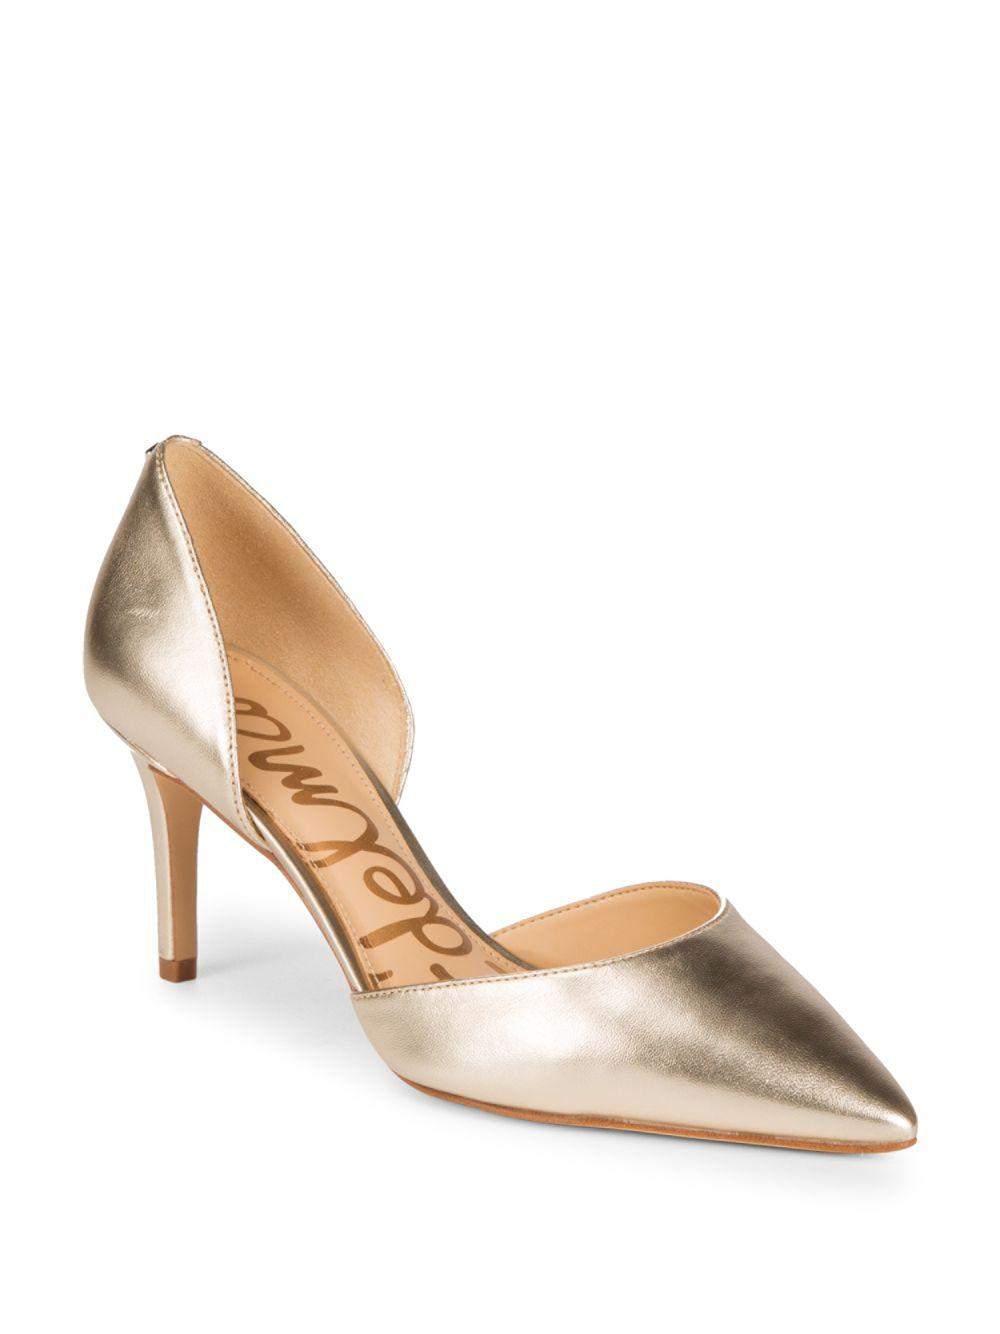 c8c90b641d Sam Edelman - Metallic Tesla Leather D'orsay Pumps - Lyst. View fullscreen